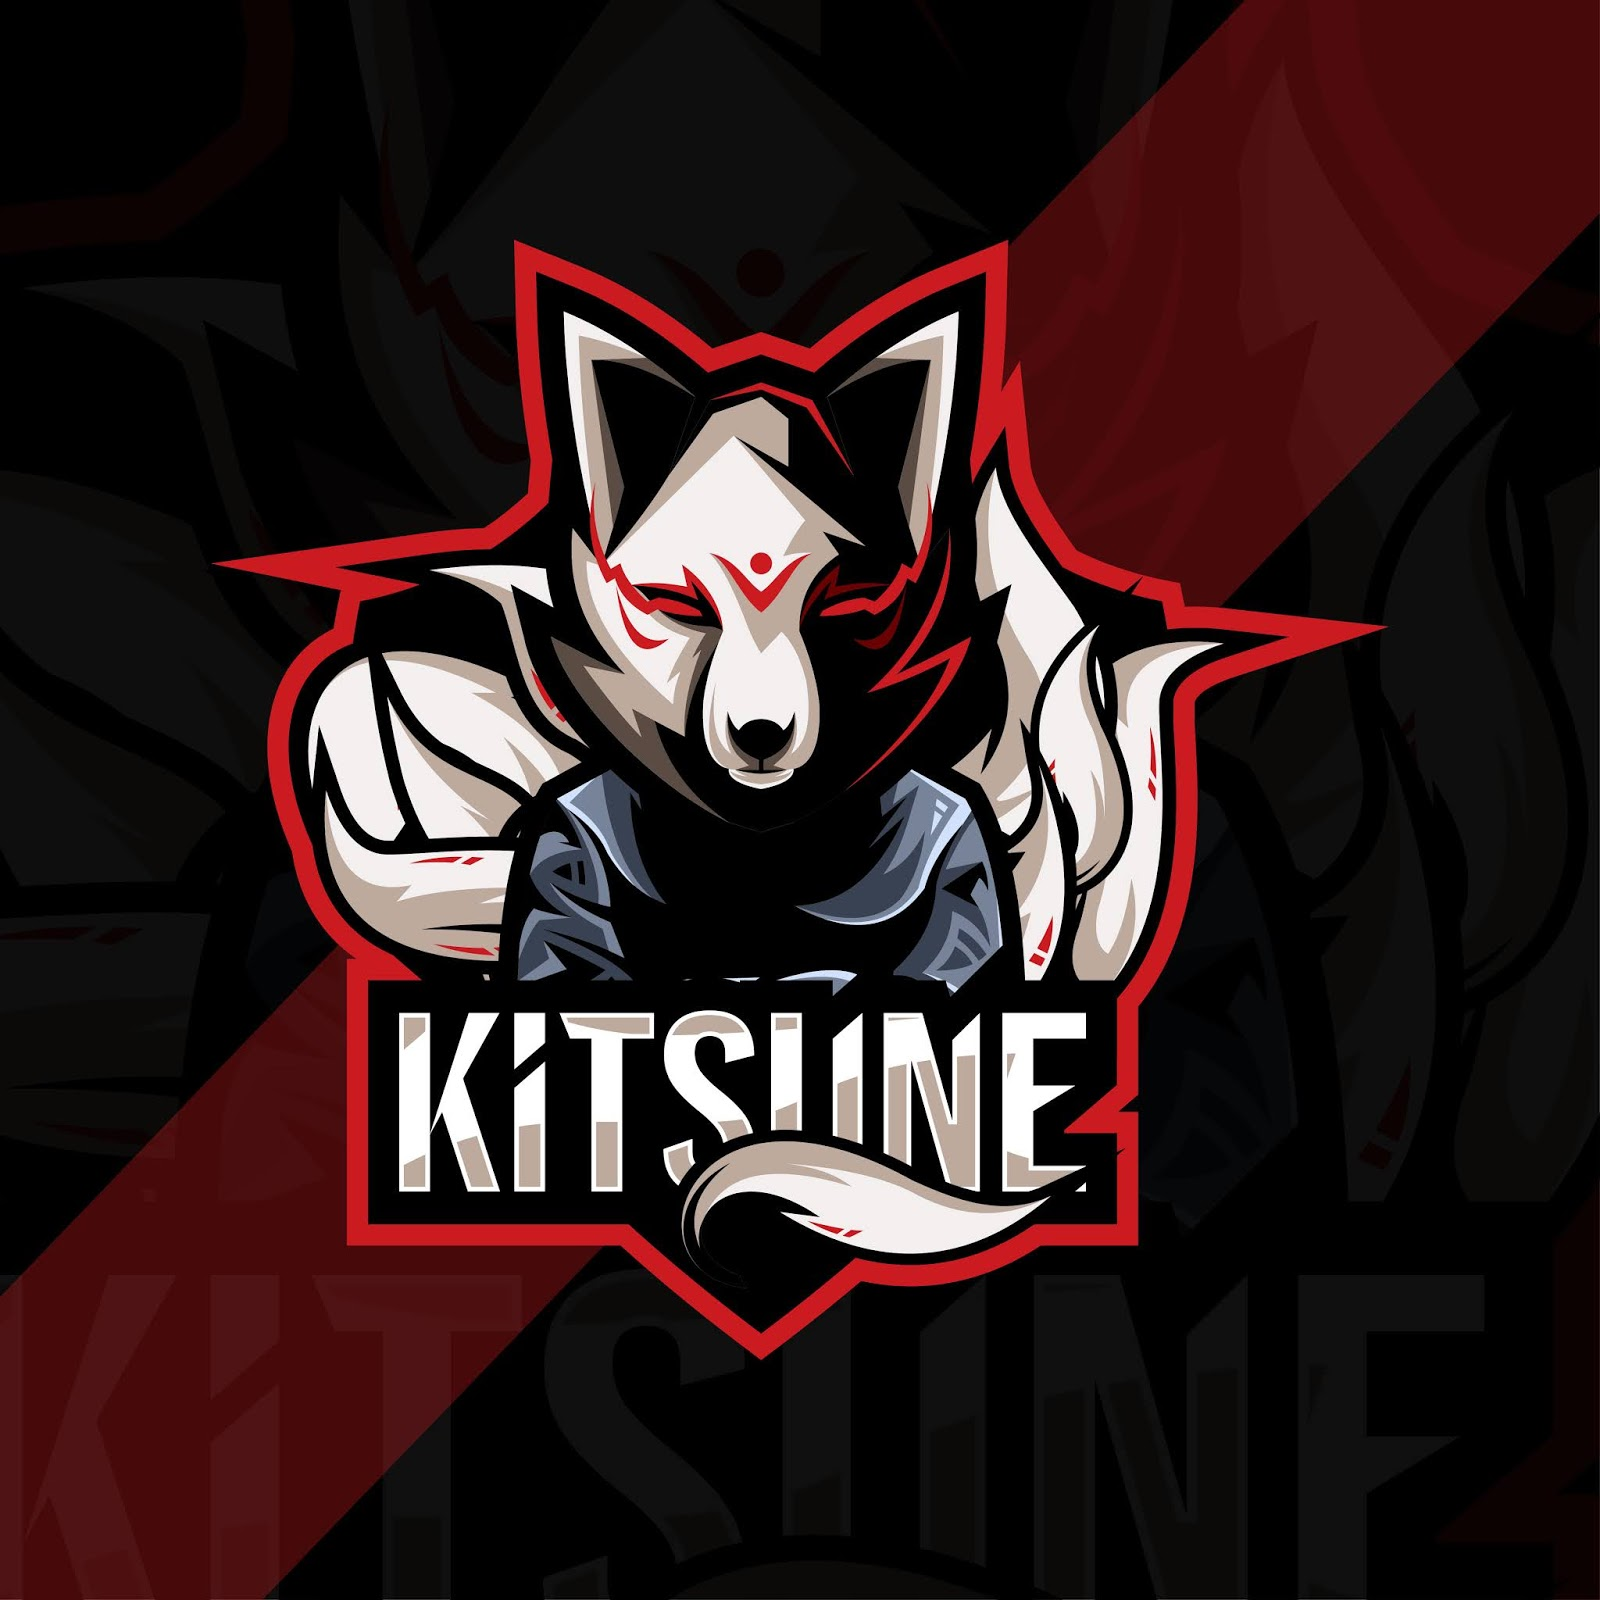 Kitsune Mascot Logo Esport Template Design Free Download Vector CDR, AI, EPS and PNG Formats